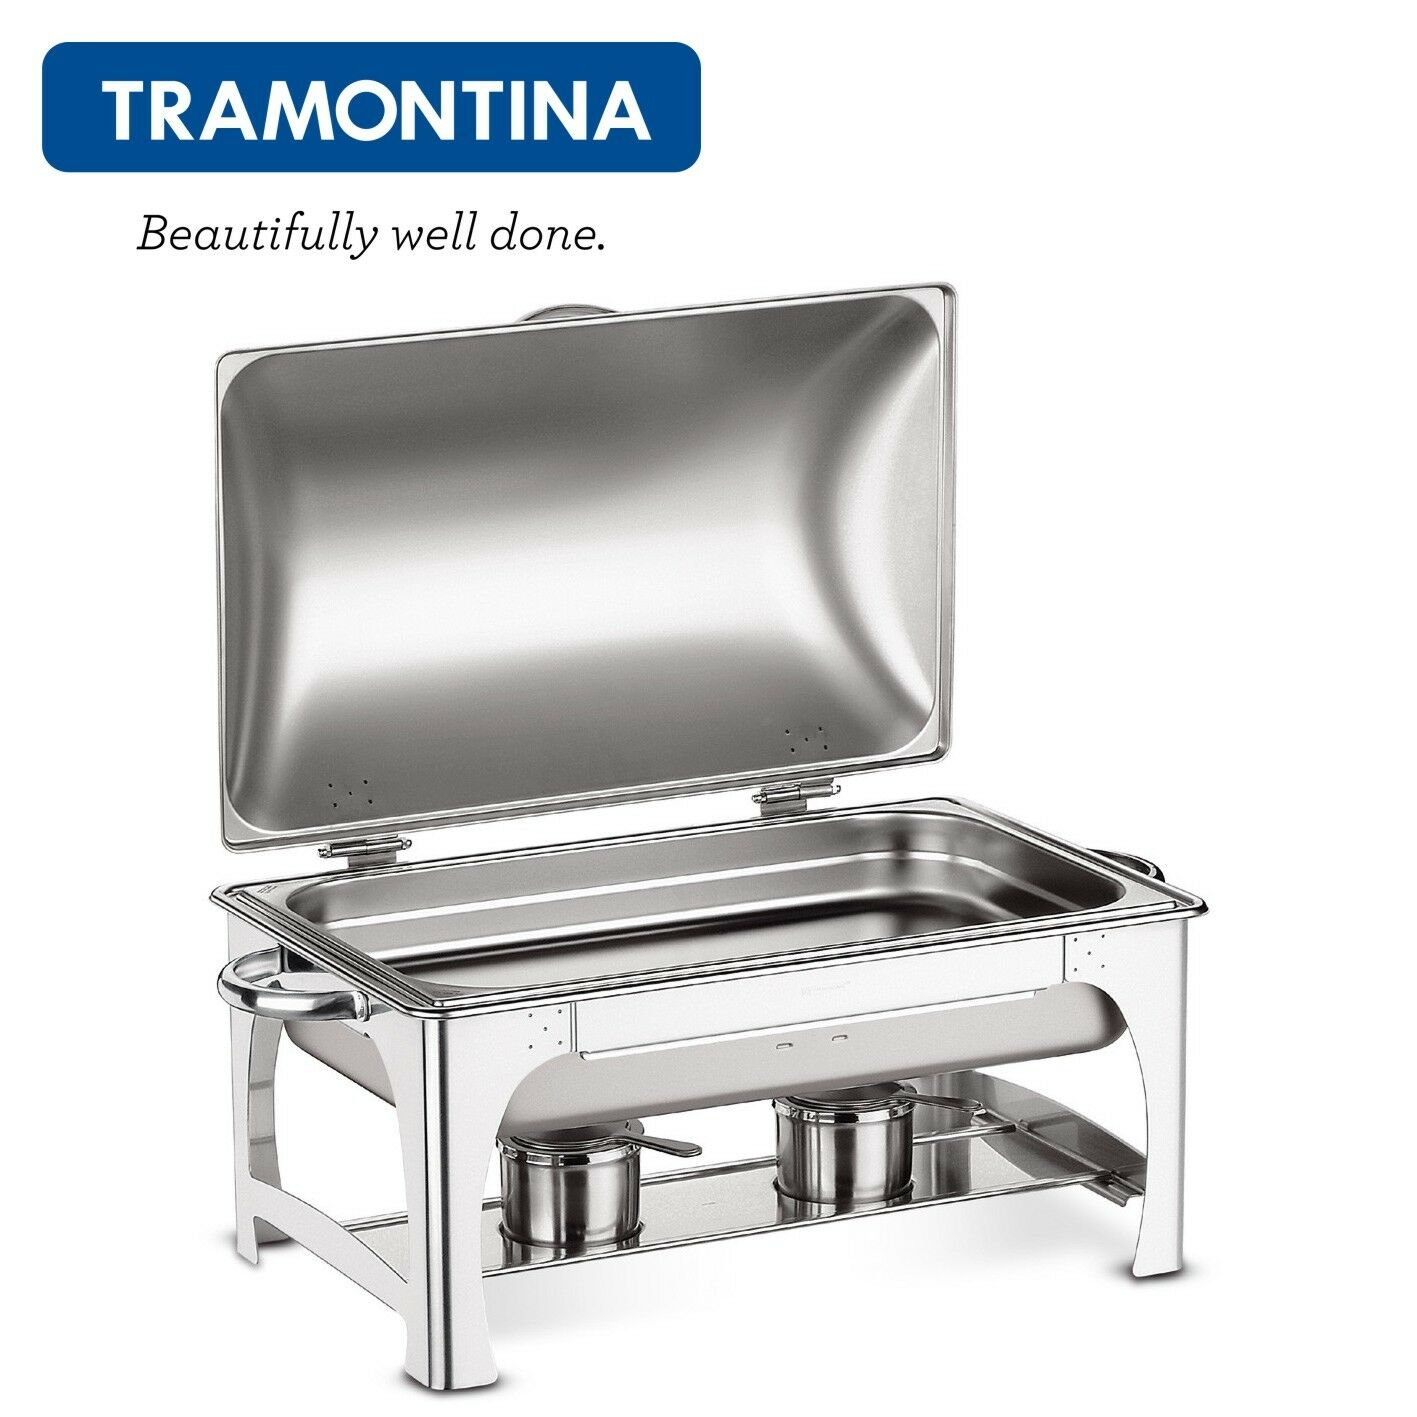 TRAMONTINA Chafing Dish with Hinged Lid Party Cater Food Warmer Single Pan 9,06L